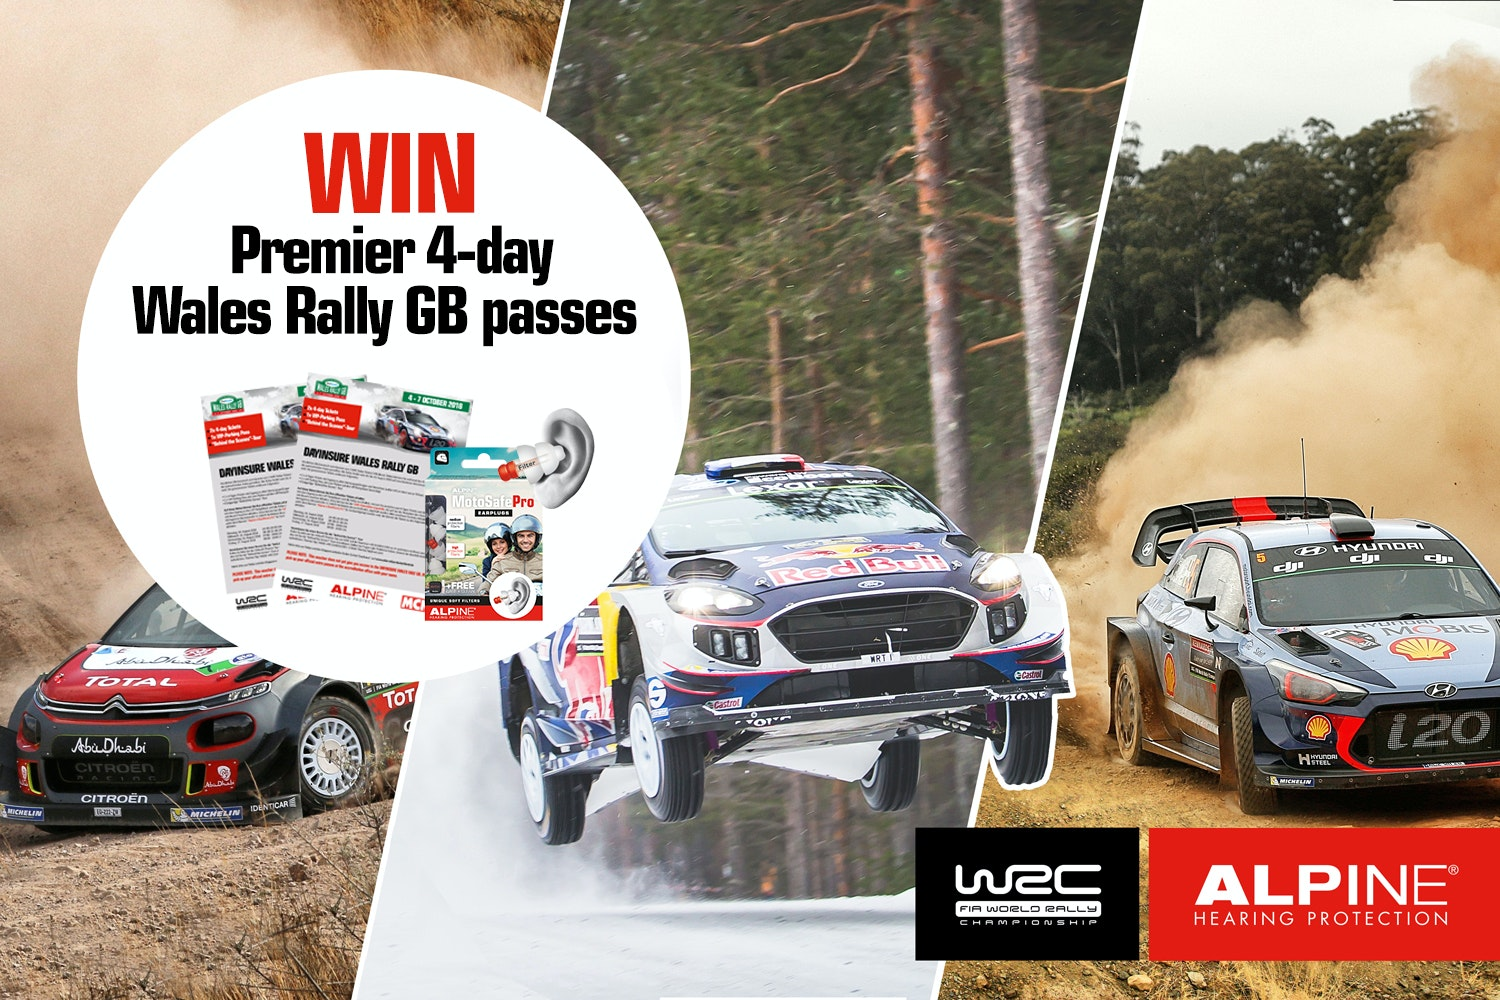 2 premier 4-day Wales Rally GB tickets + VIP tour with Alpine Hearing Protection sweepstakes